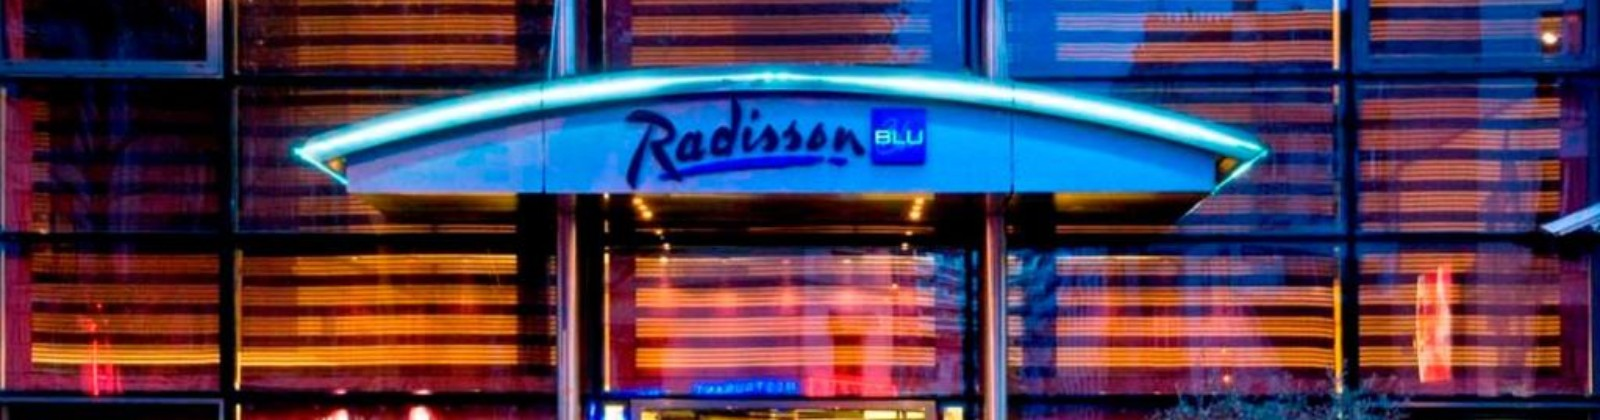 radisson blu hotel paris olevene restaurant seminaire convention